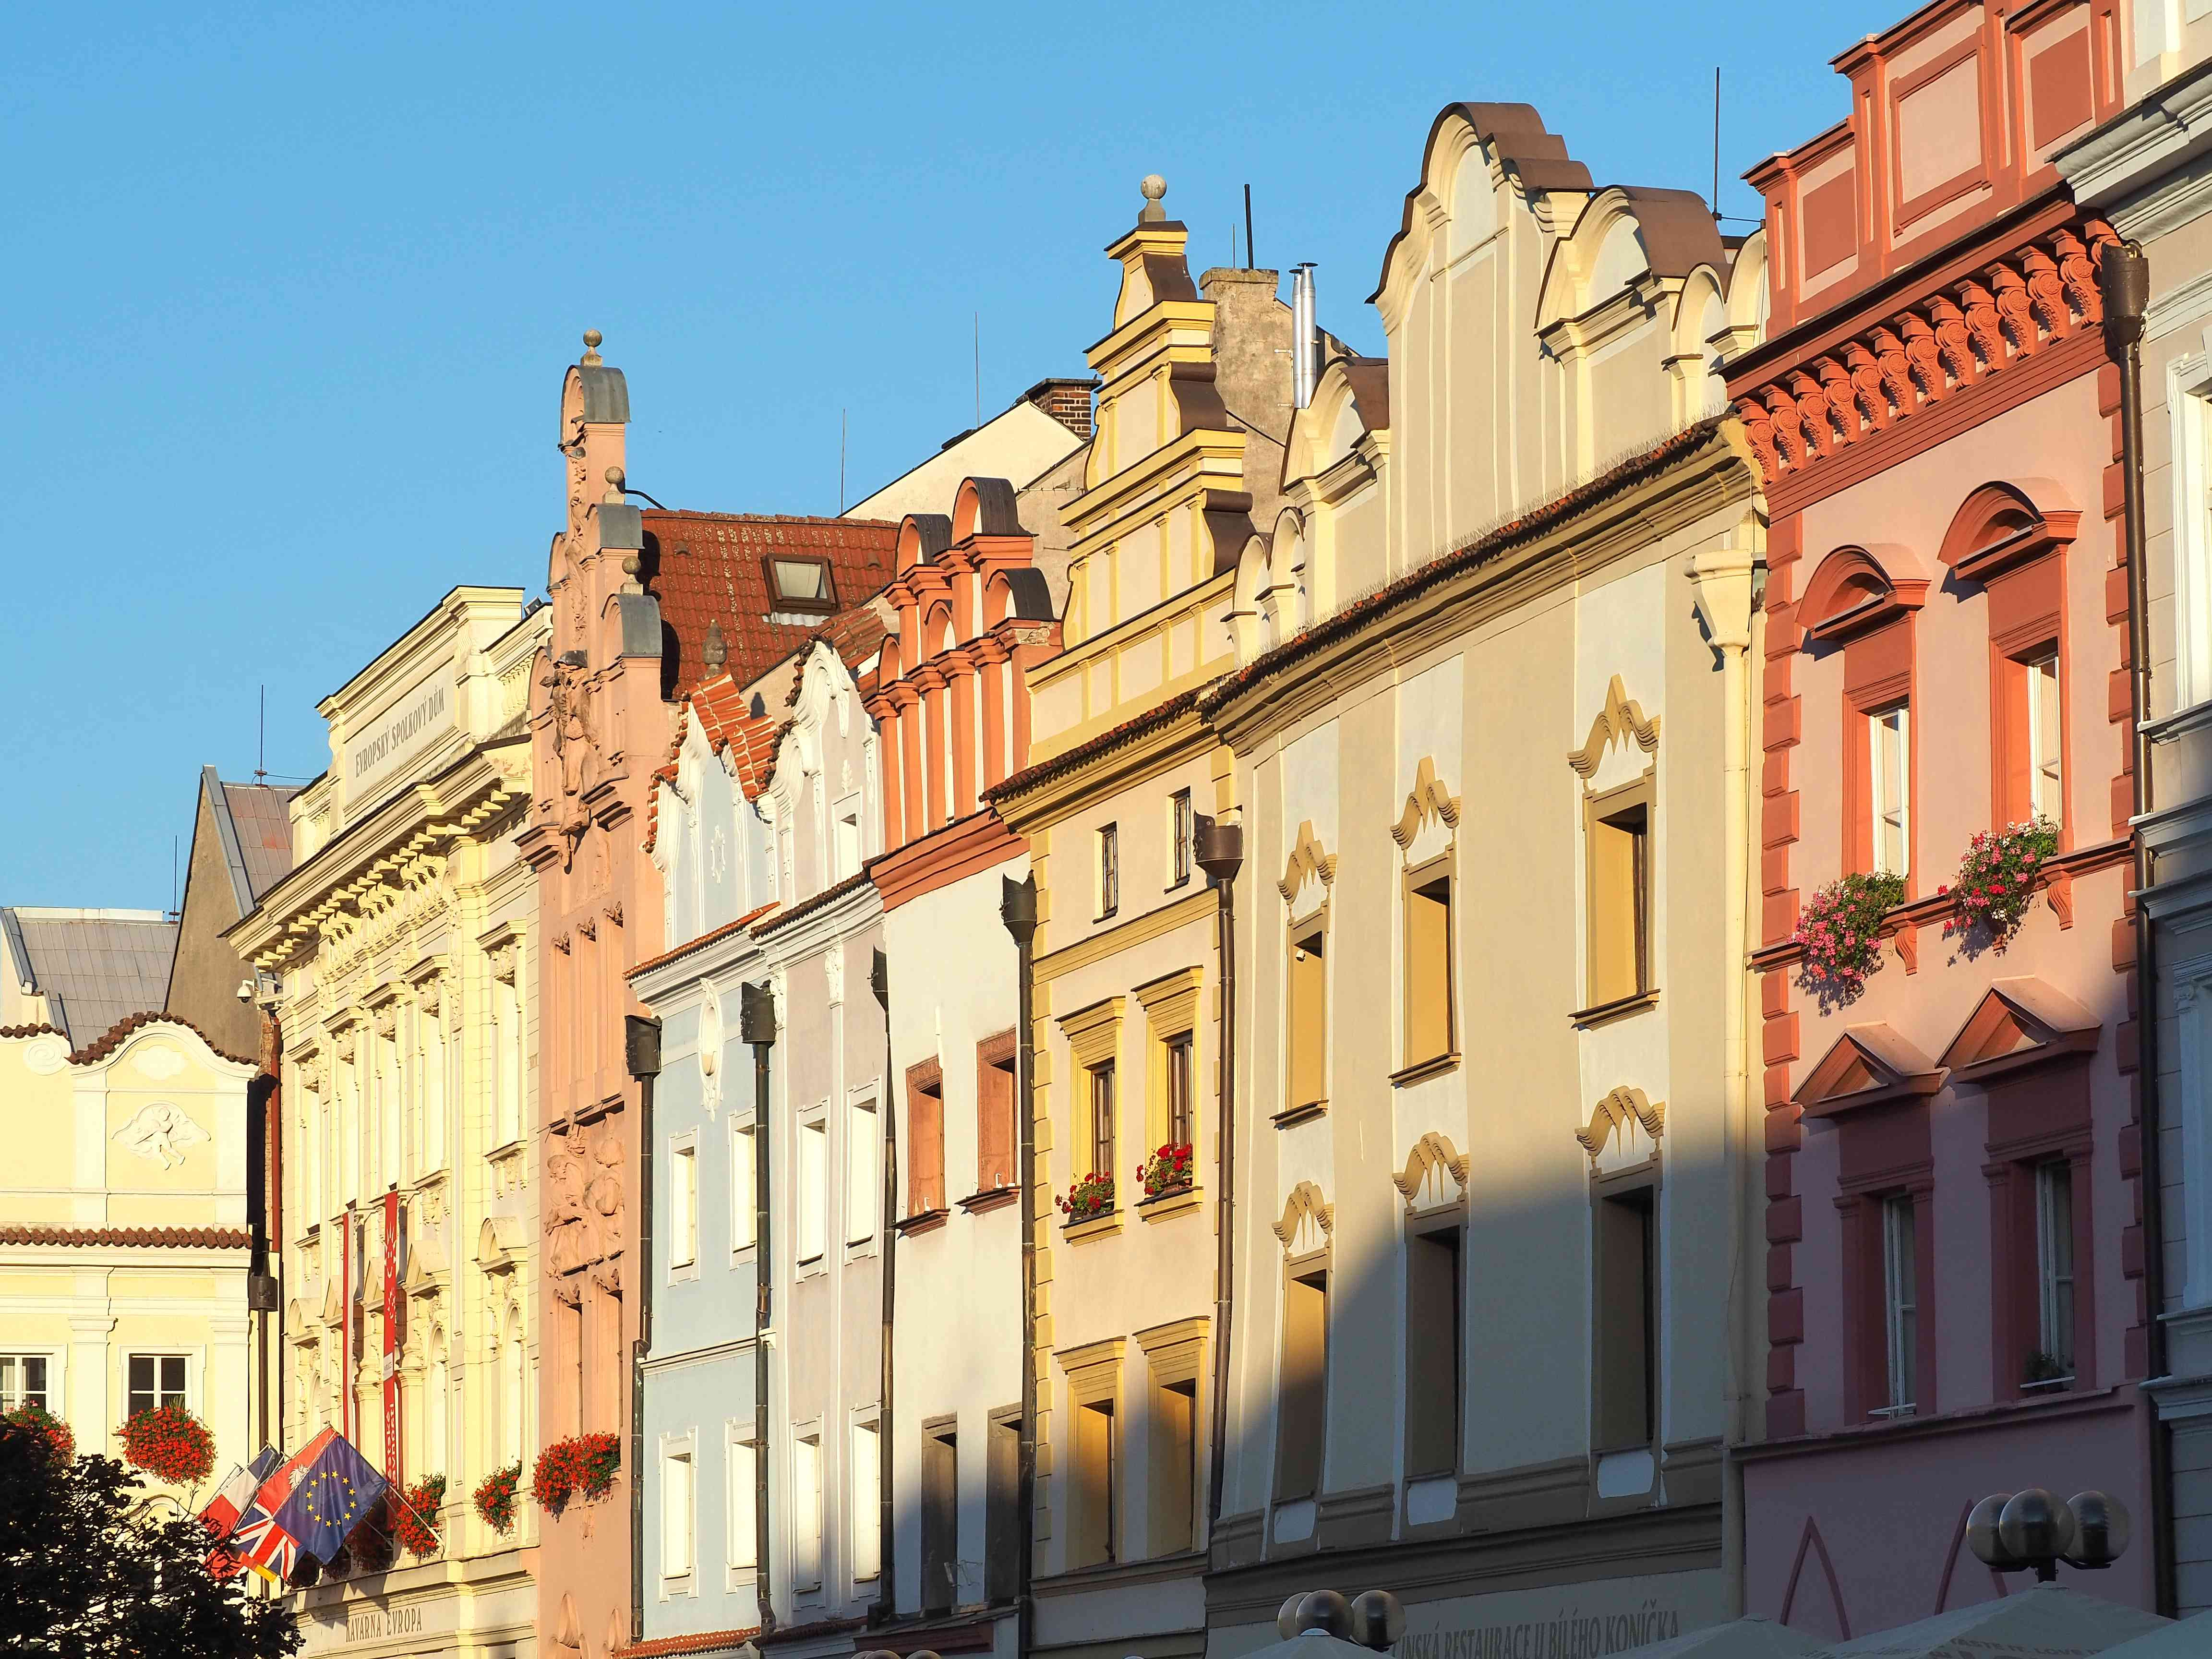 Pardubice, Czech Republic. The facades of the historical buildings at Perstynske square